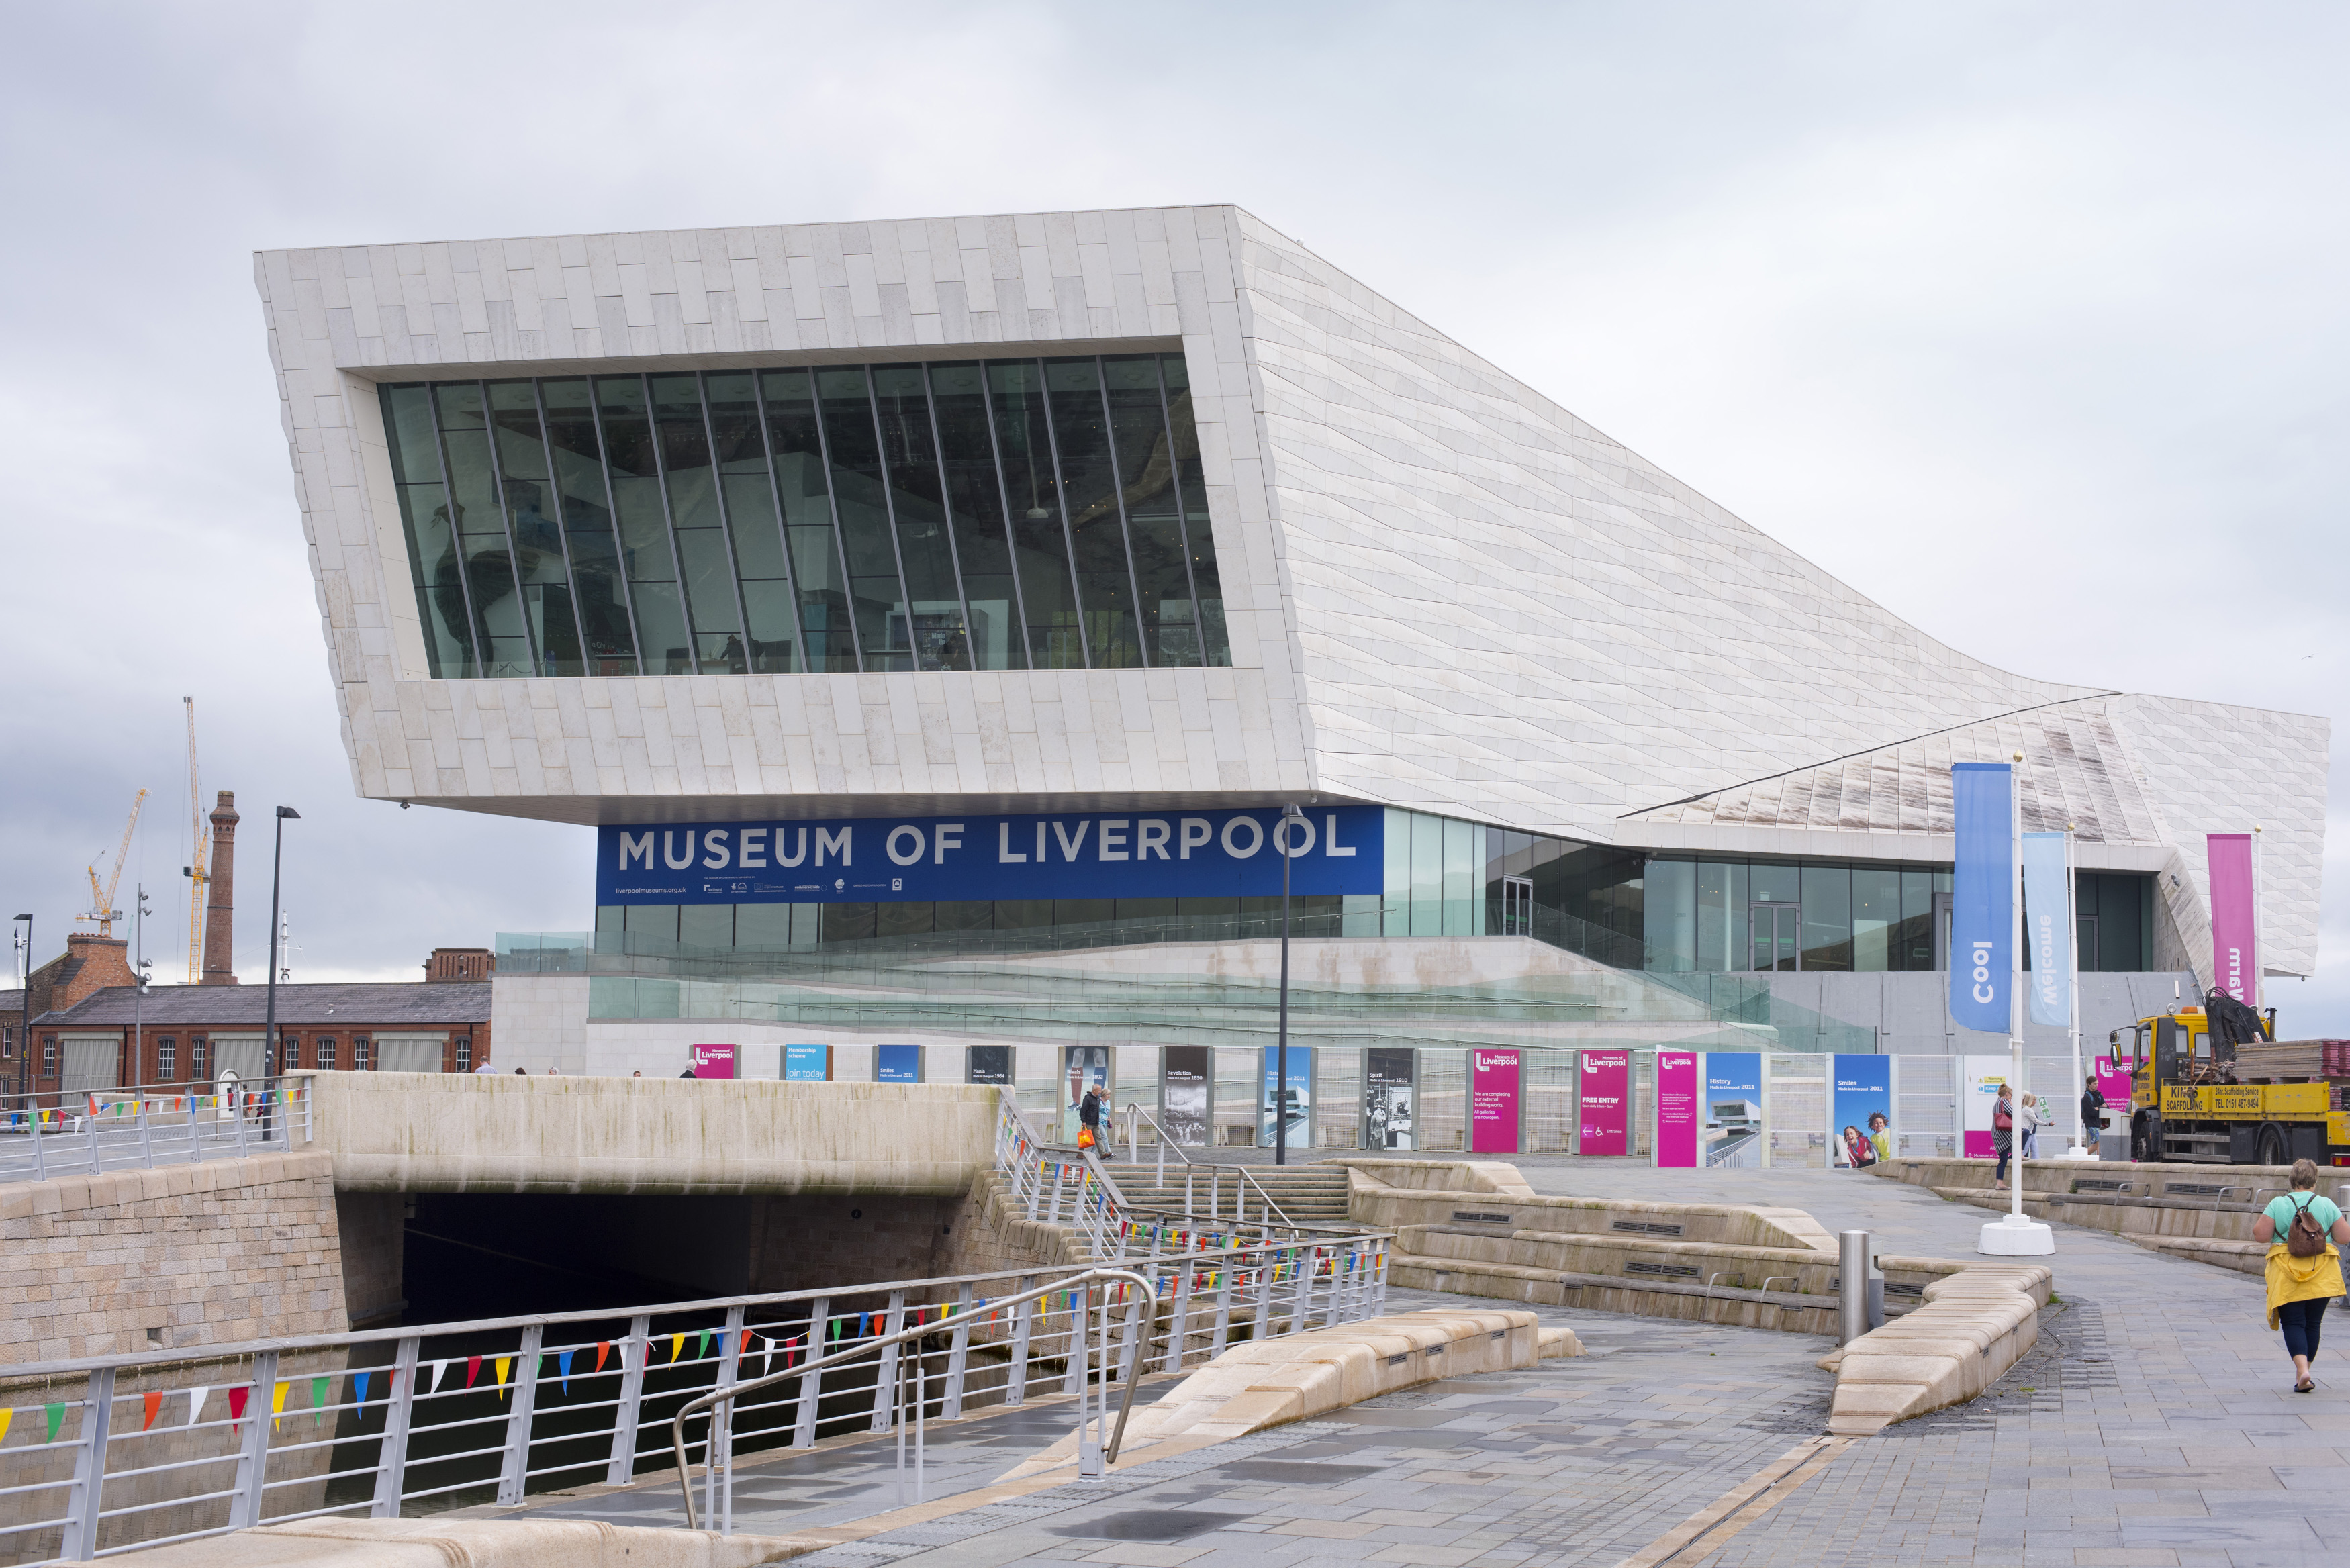 Person walking up road near front section of the Museum of Liverpool in the United Kingdom